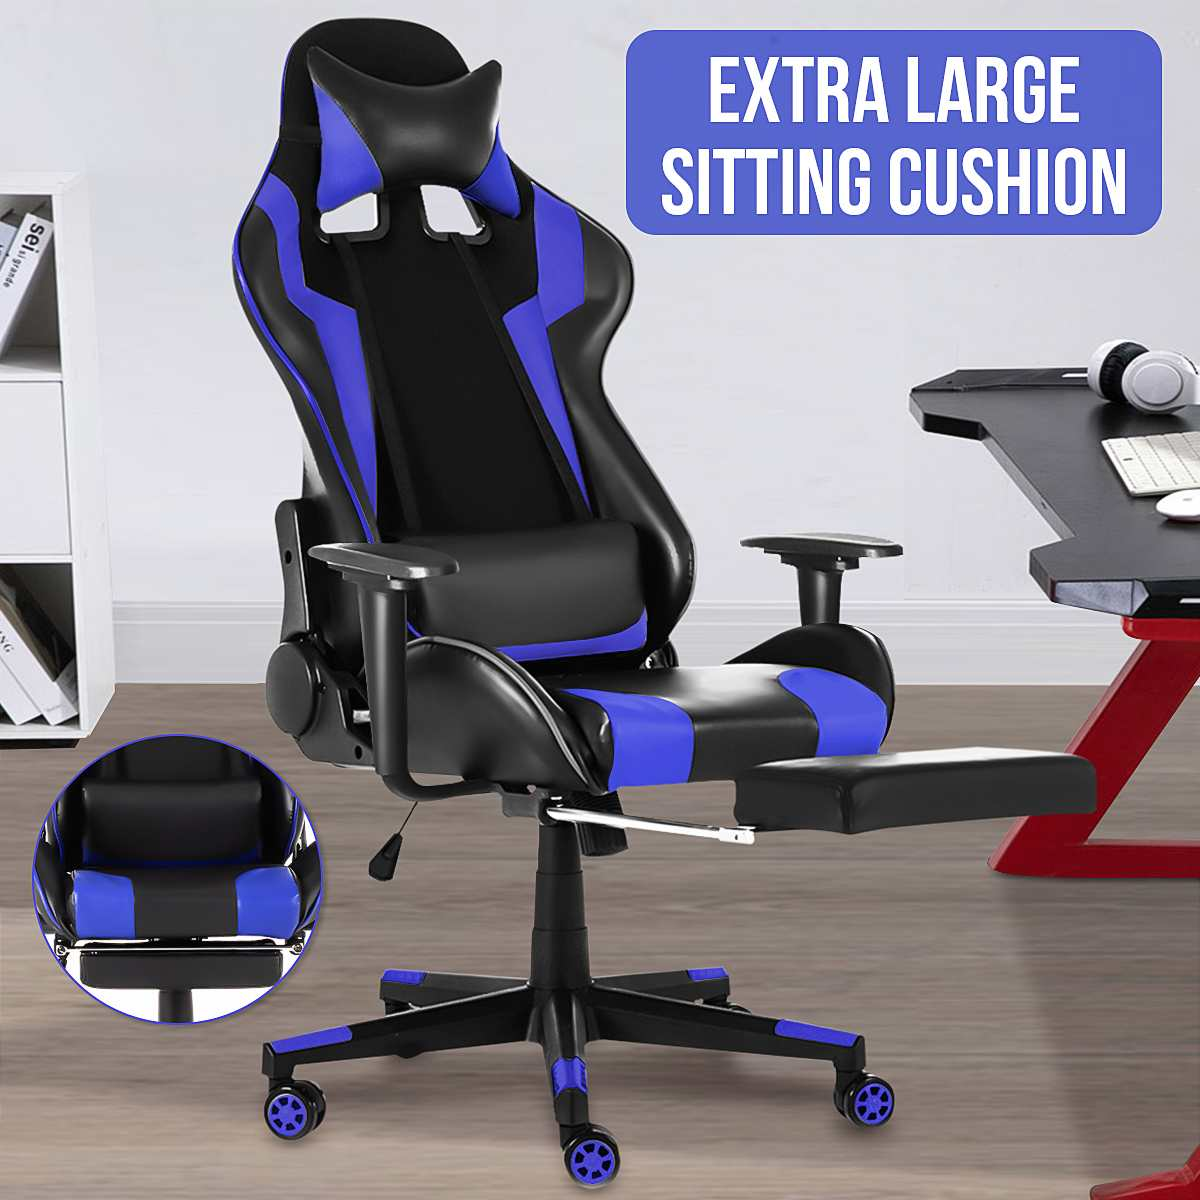 H74c31aae9ac44e00b5660e91646a457eb - WCG Gaming Chair Computer Armchair Office Chairs Home Swivel Massage Chair Lifting Adjustable Desk Chair Lying Recliner Chair